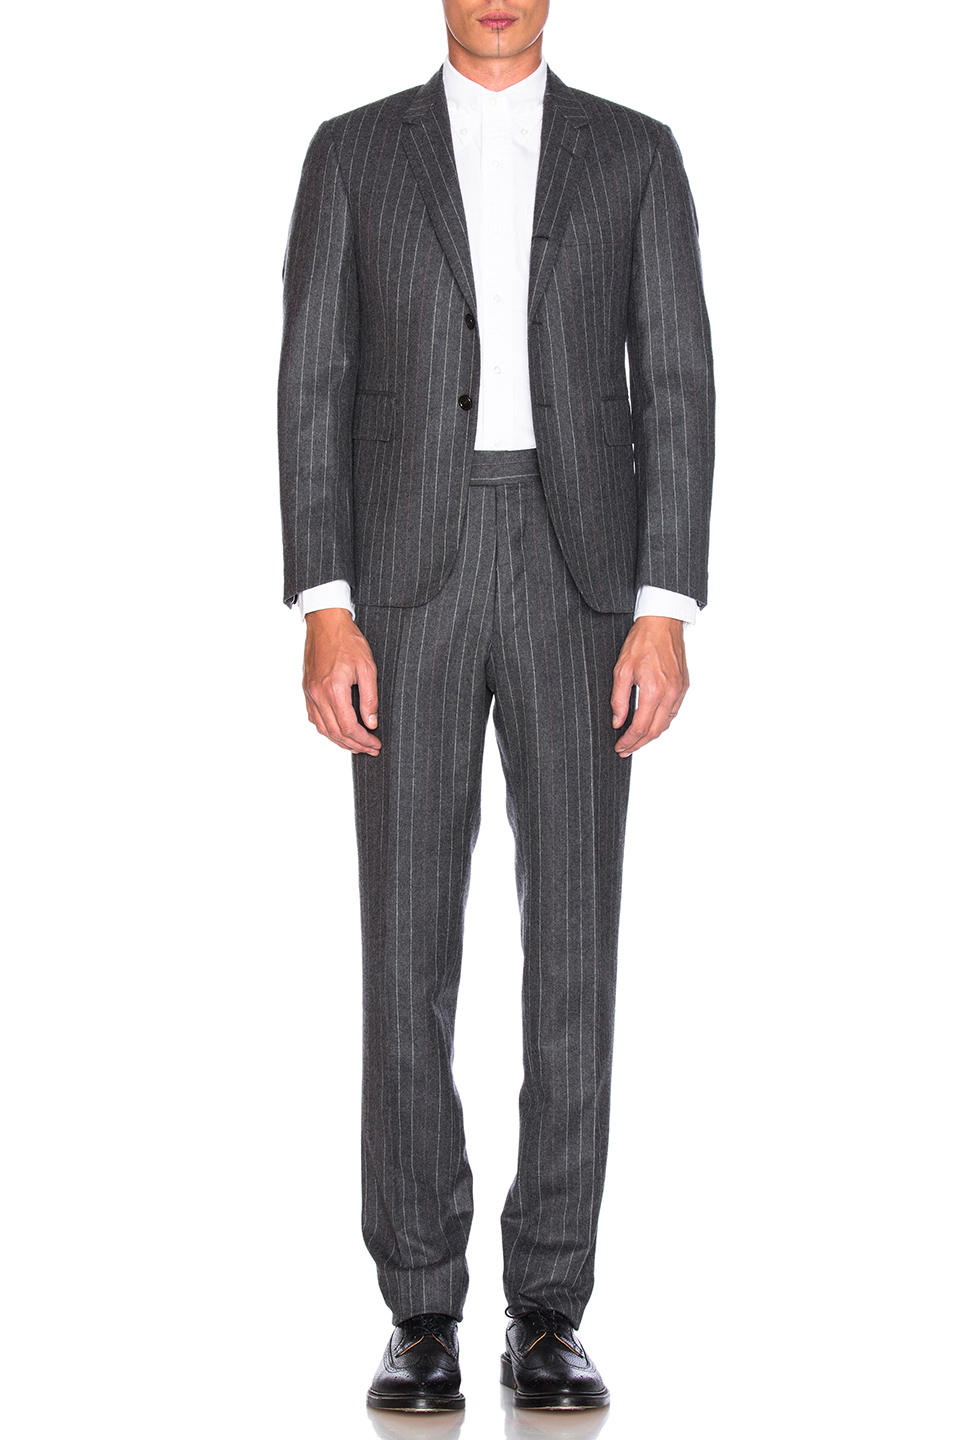 Thom Browne Chalk Stripe Wool Suit in Gray,Stripes